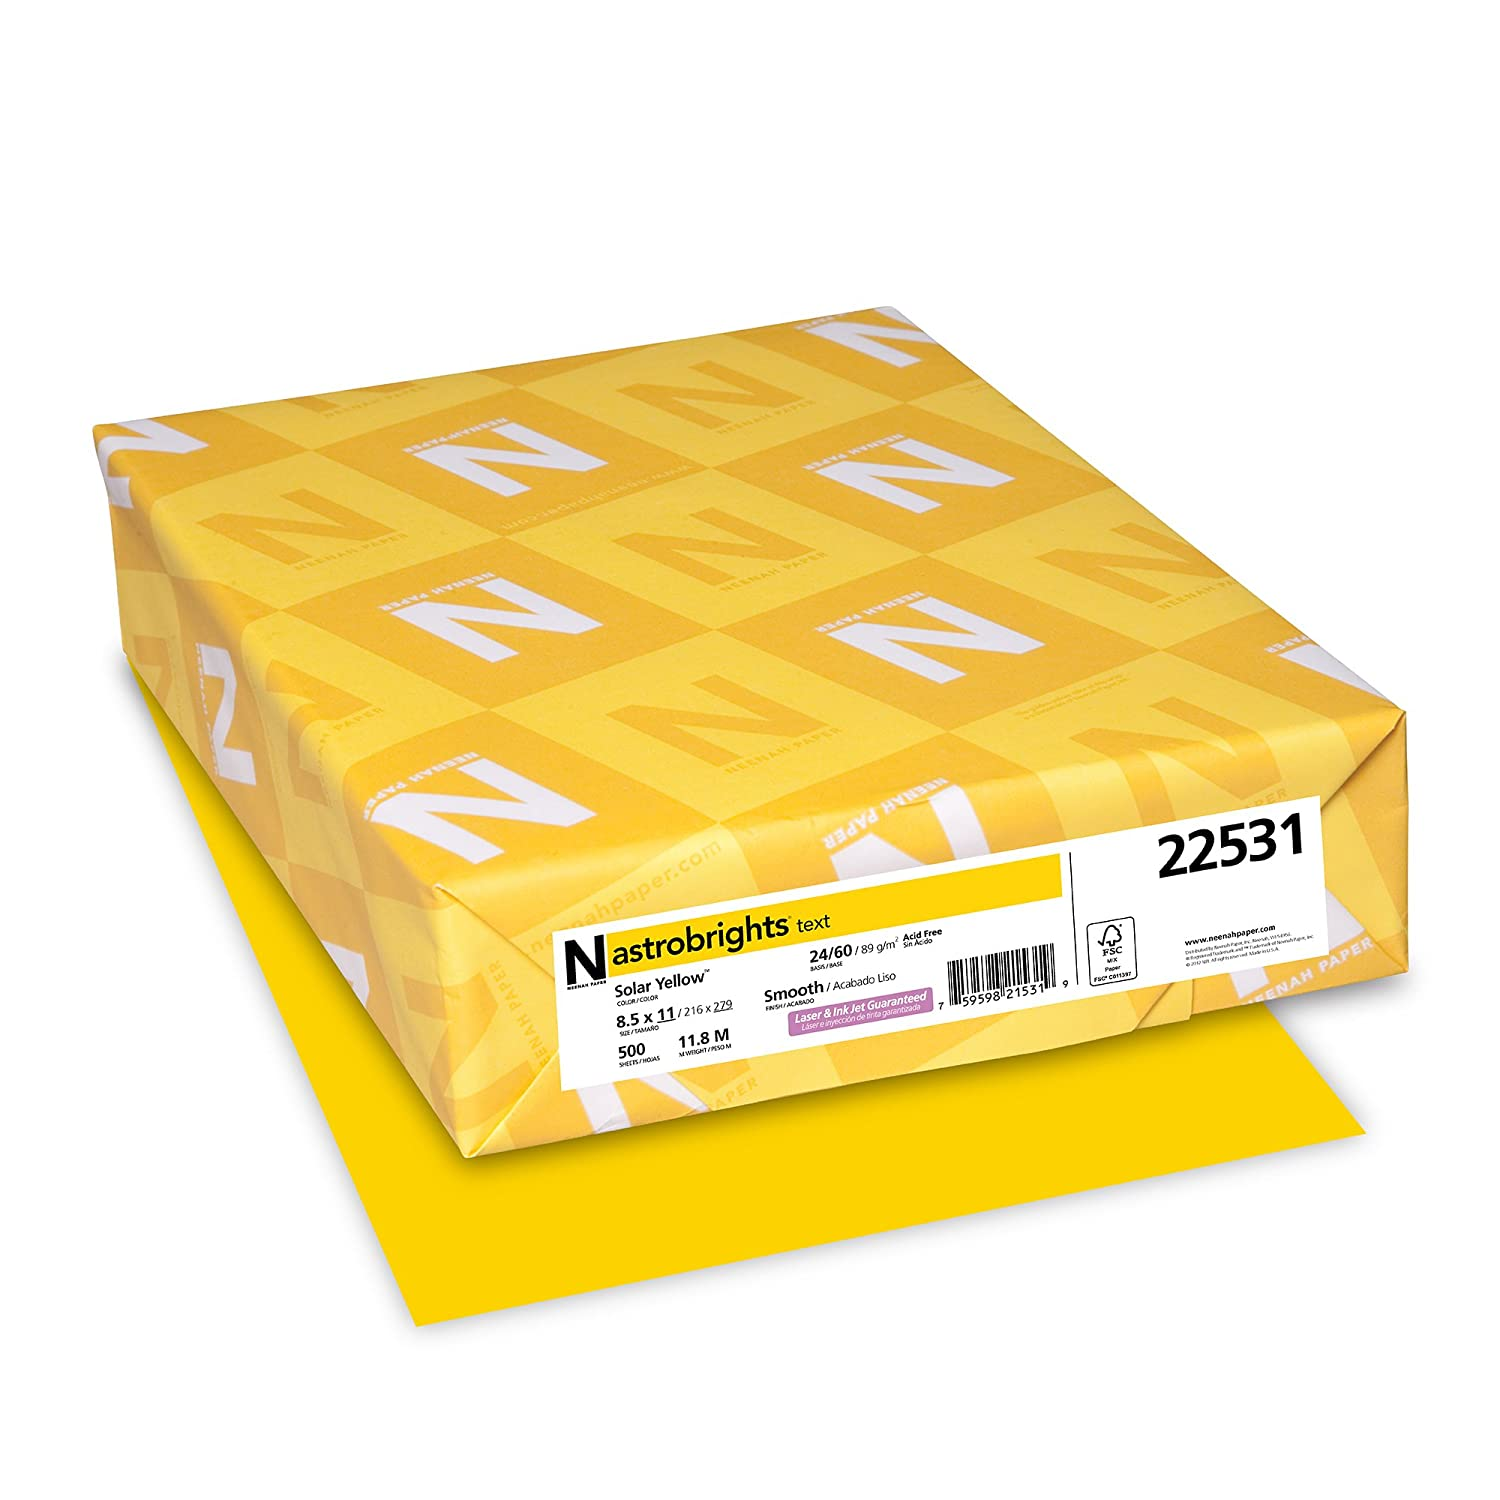 """Wausau Paper 22531 Astrobrights Color Paper, 8.5"""" x 11"""", 24 lb / 89 GSM, Solar Yellow, 500 Sheets"""